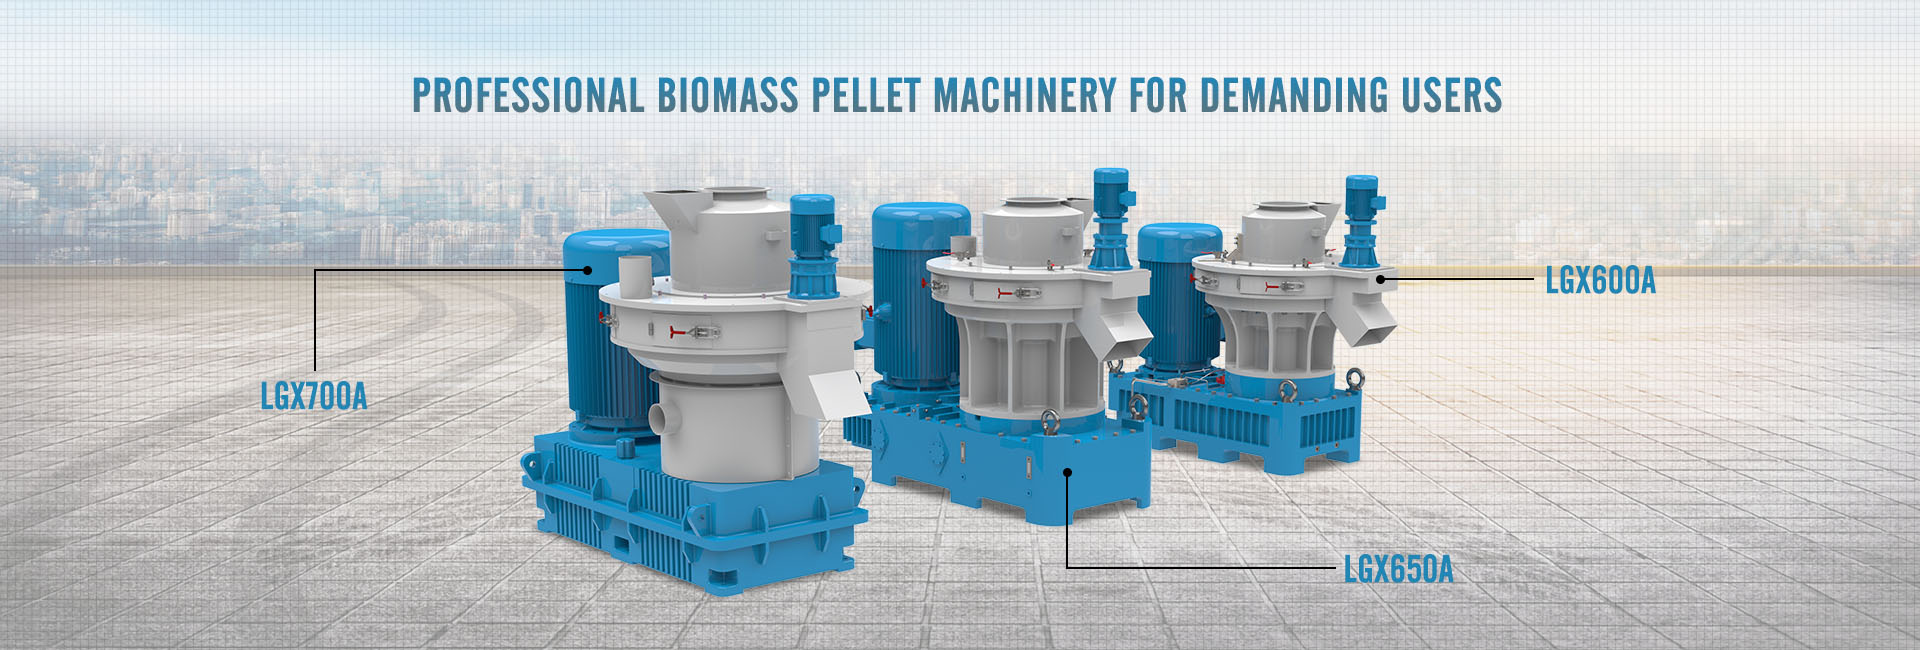 Professional biomass pellet machinery for demanding users